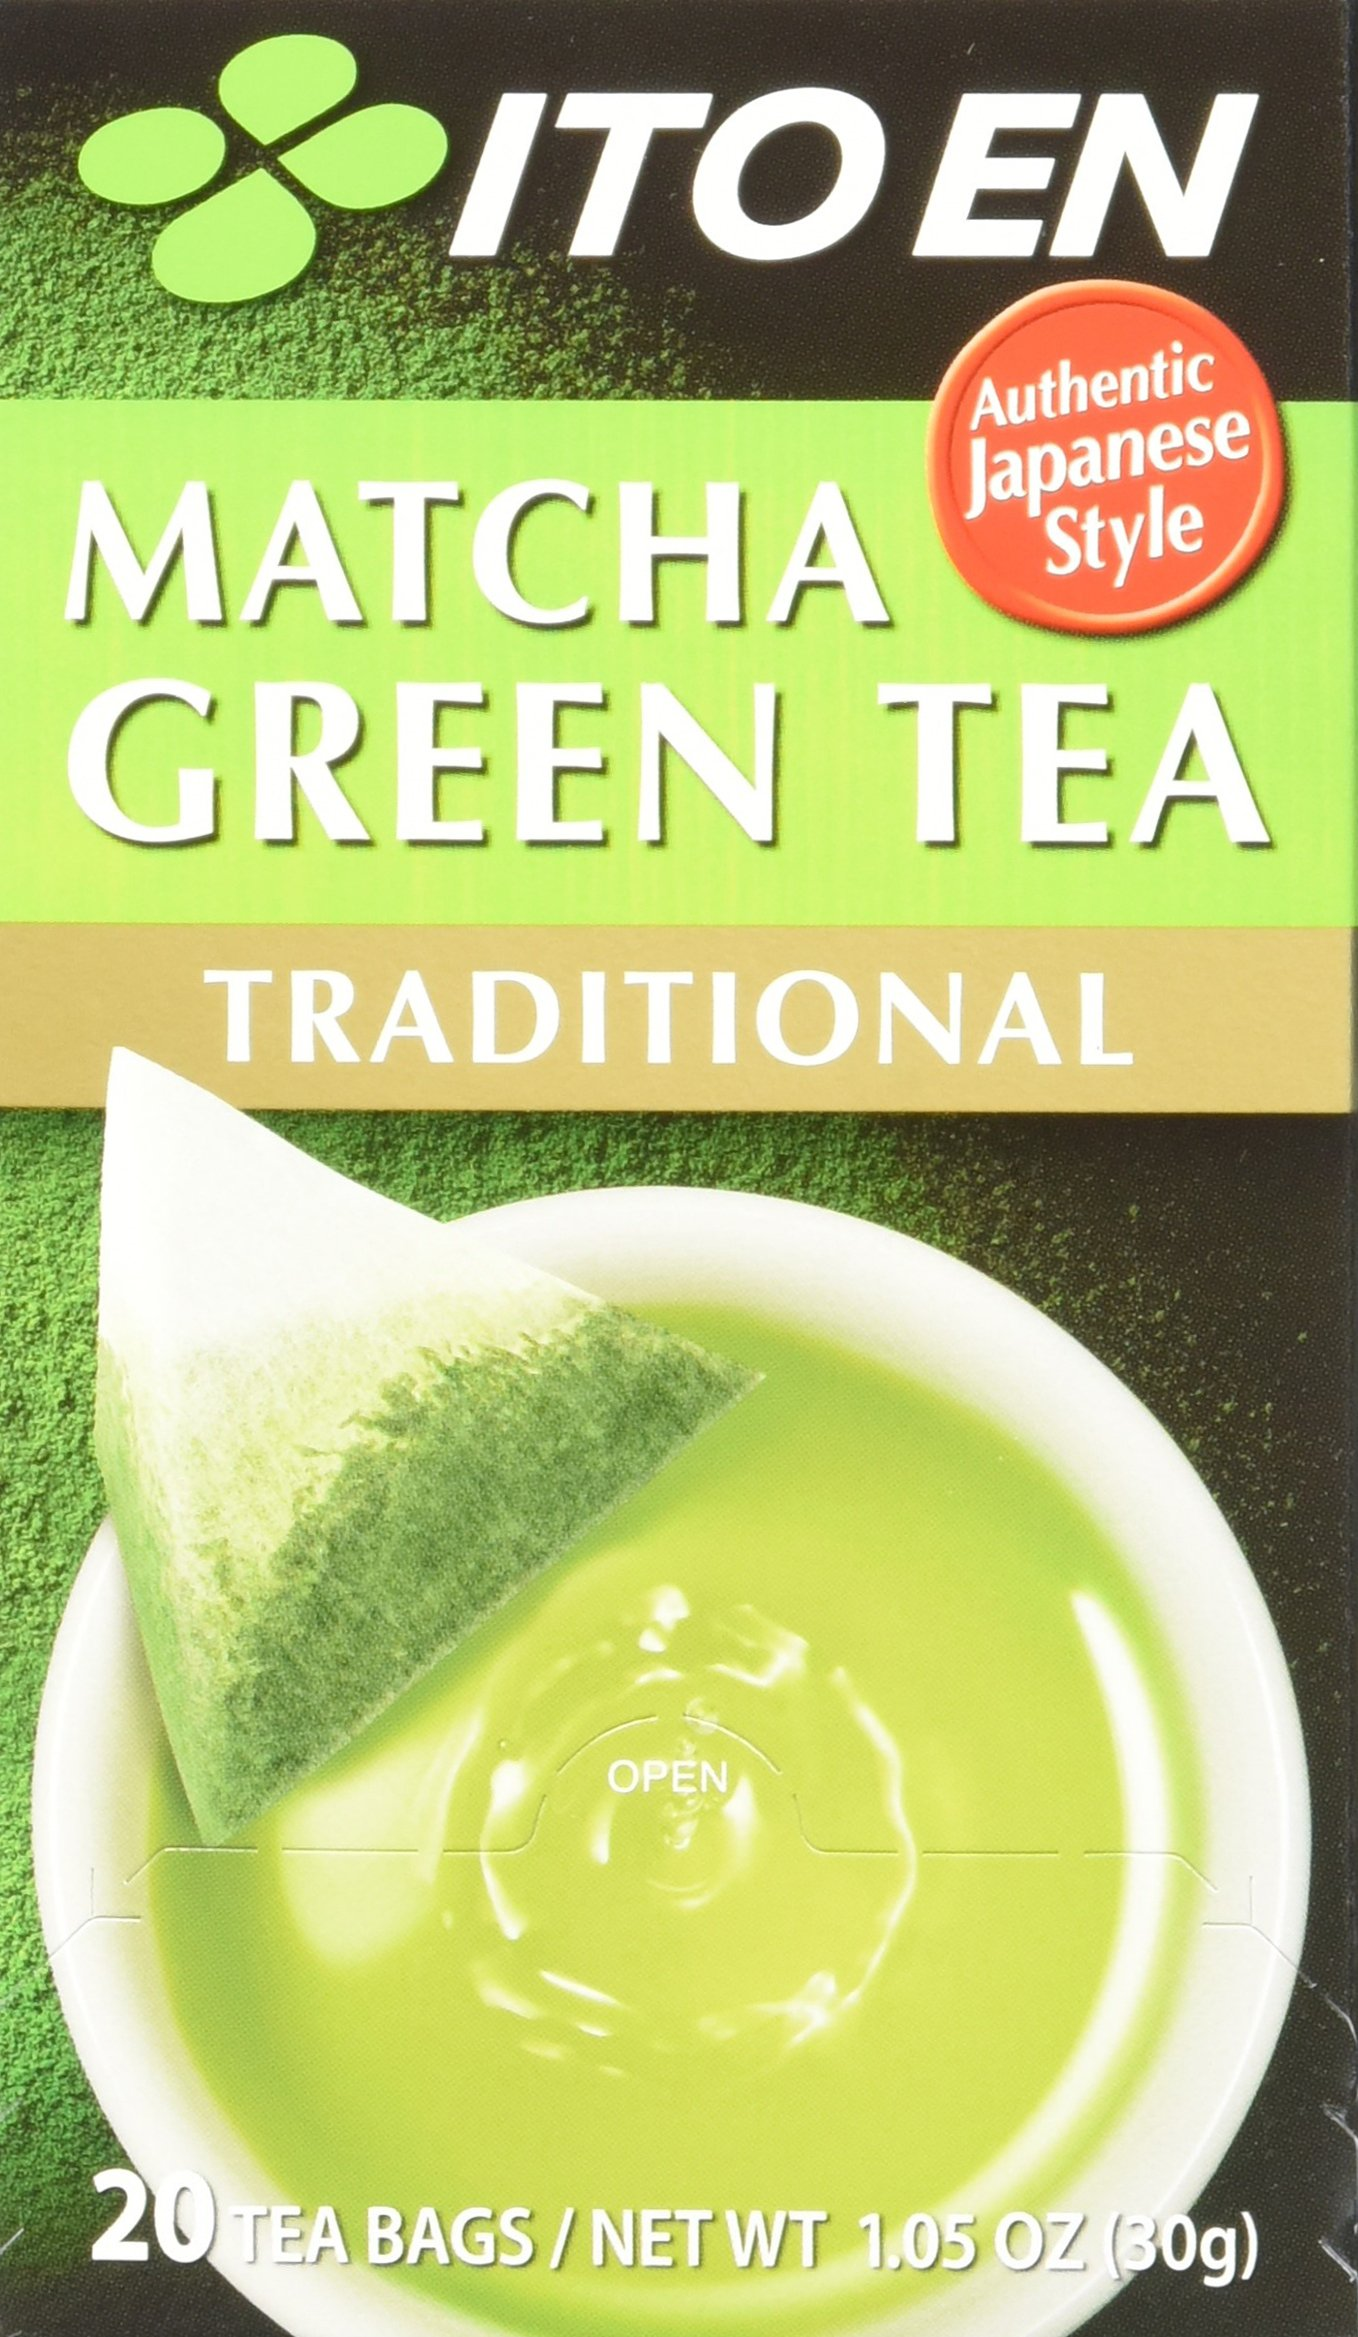 Ito En Matcha Green Tea Traditional 20Count (Pack of 8) Zero Calorie No Artificial Sweeteners Caffeinated Good Source of Vitamin C & Antioxidants BPA Free by Ito En